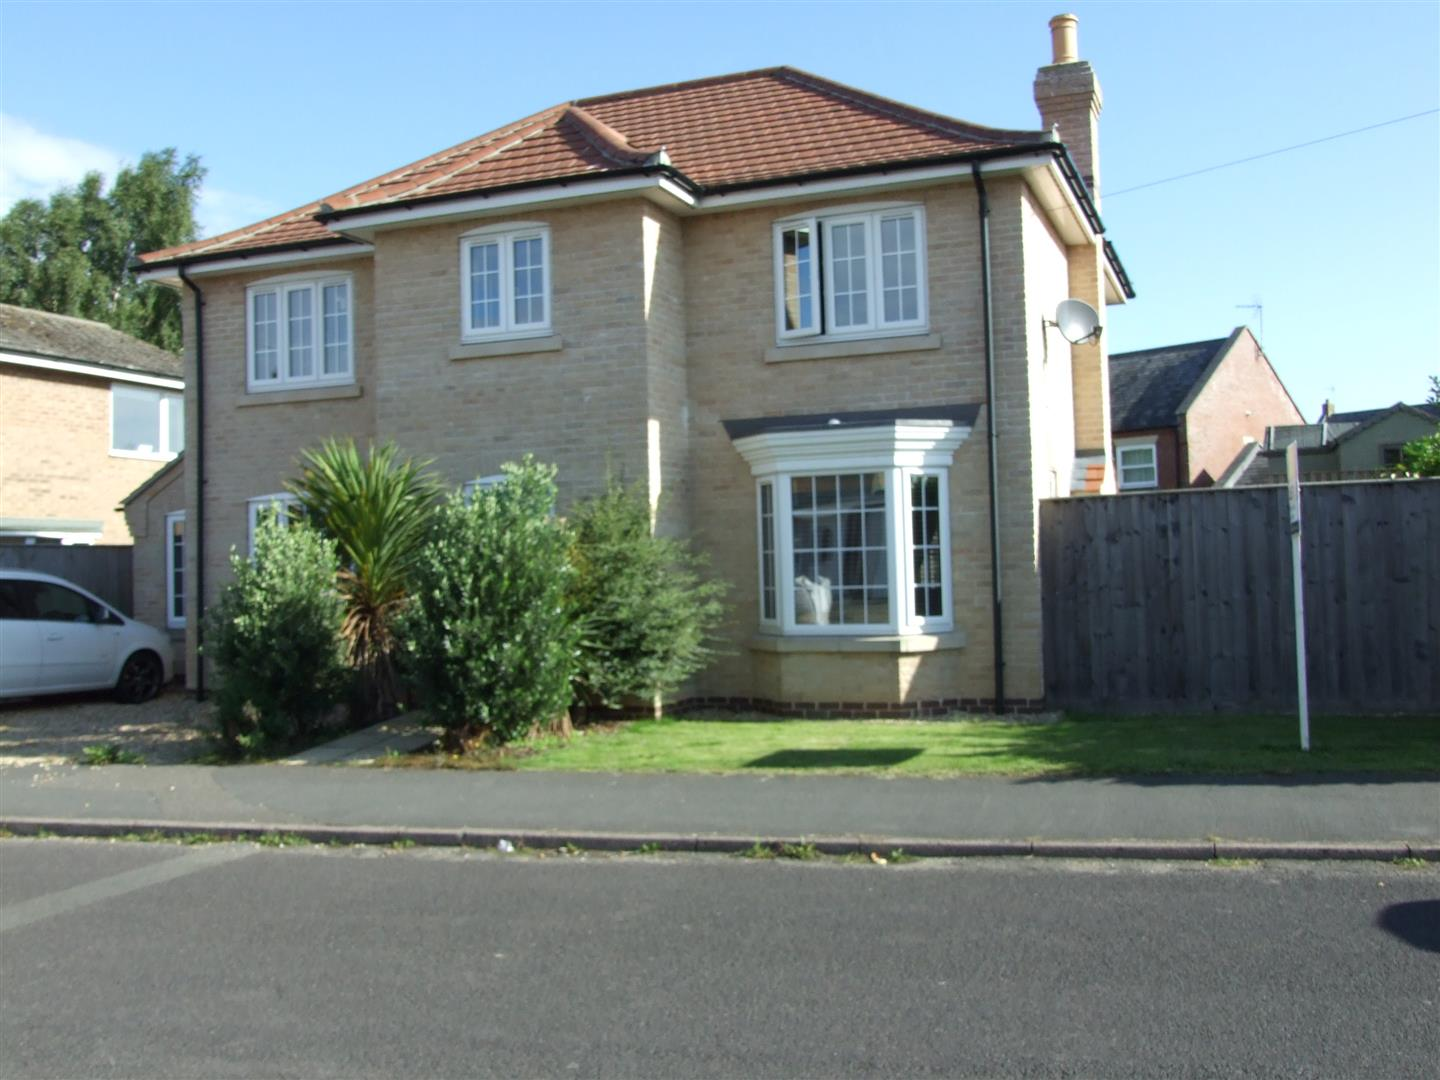 4 bed house to rent in Lancaster Drive, Long Sutton  - Property Image 1